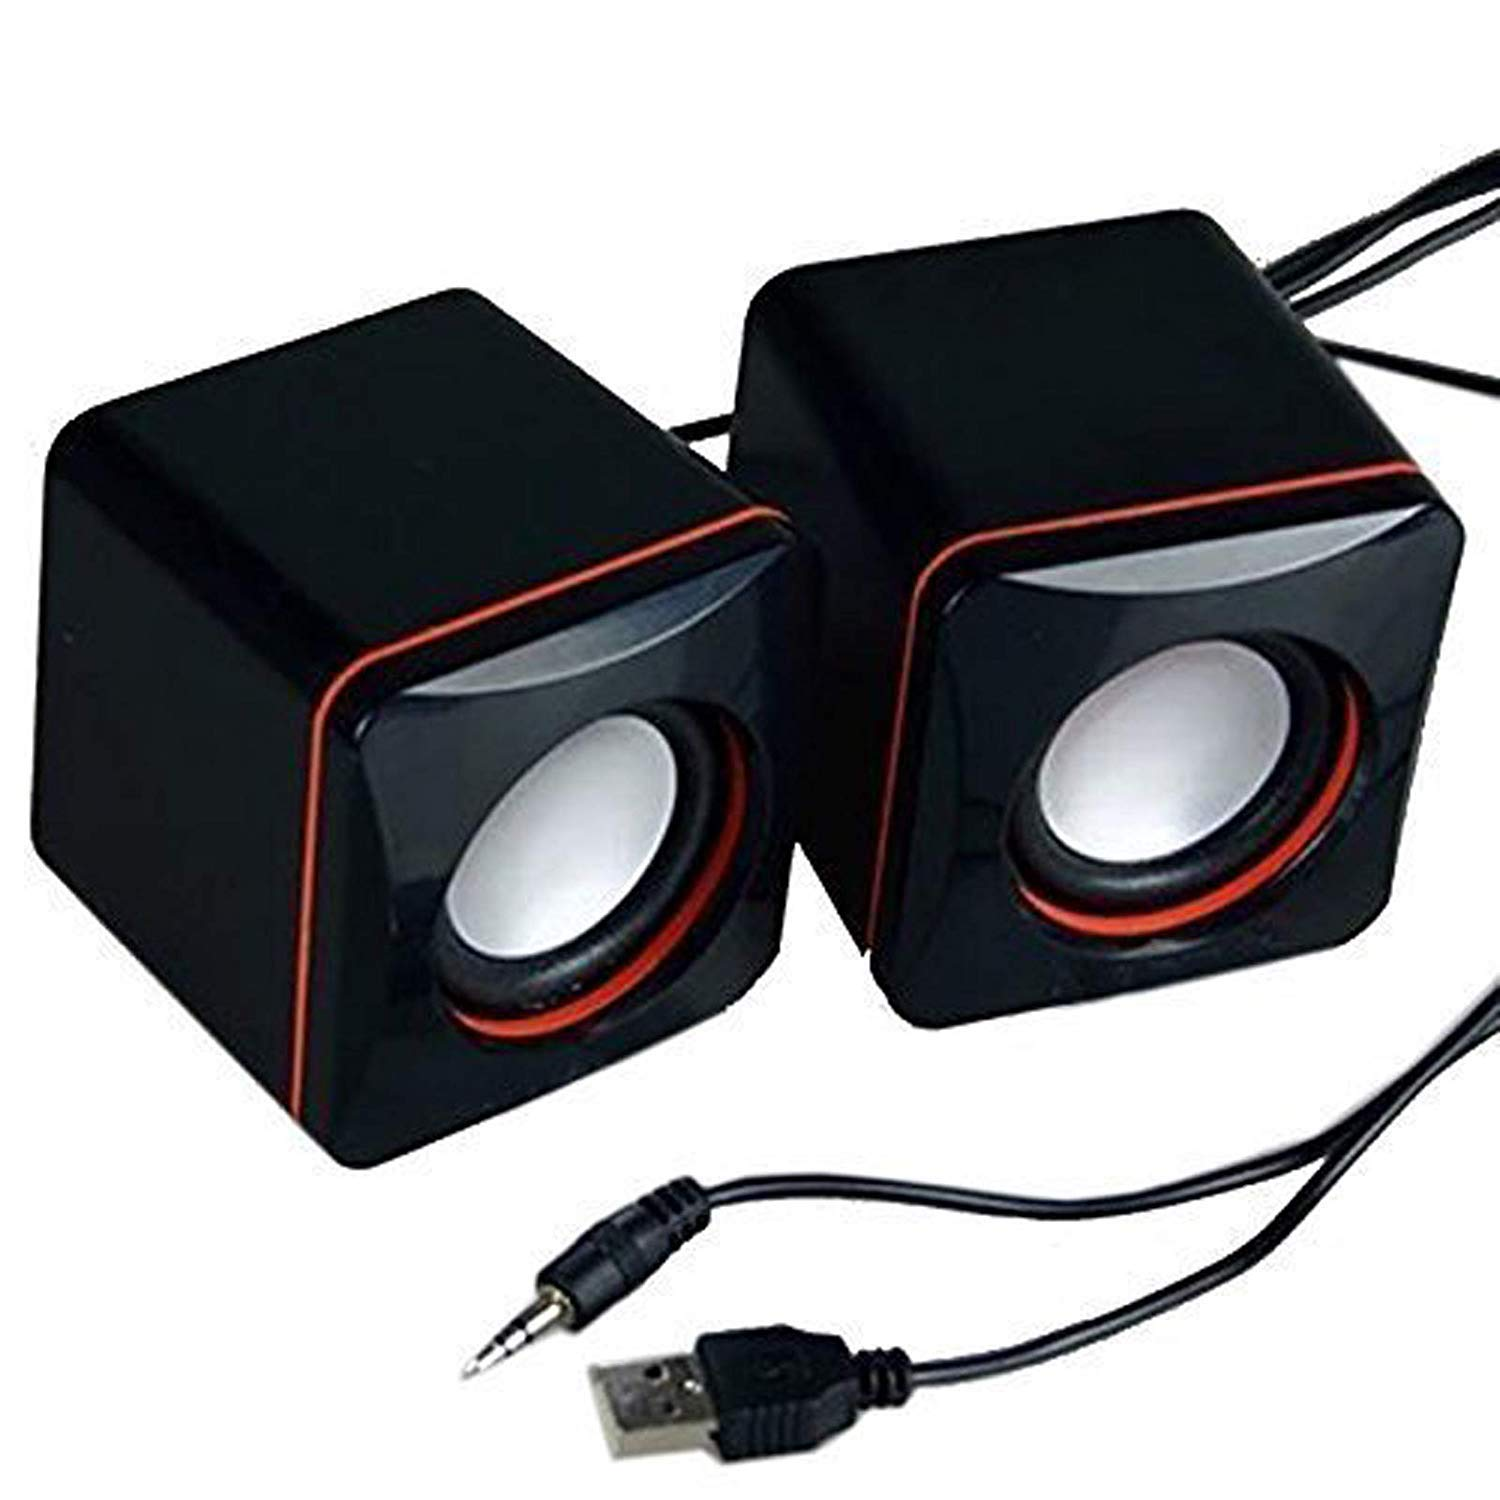 RONSHIN Portable Computer Speakers USB Powered Desktop Mini Speaker Bass Sound Music Player System Wired Small Speaker